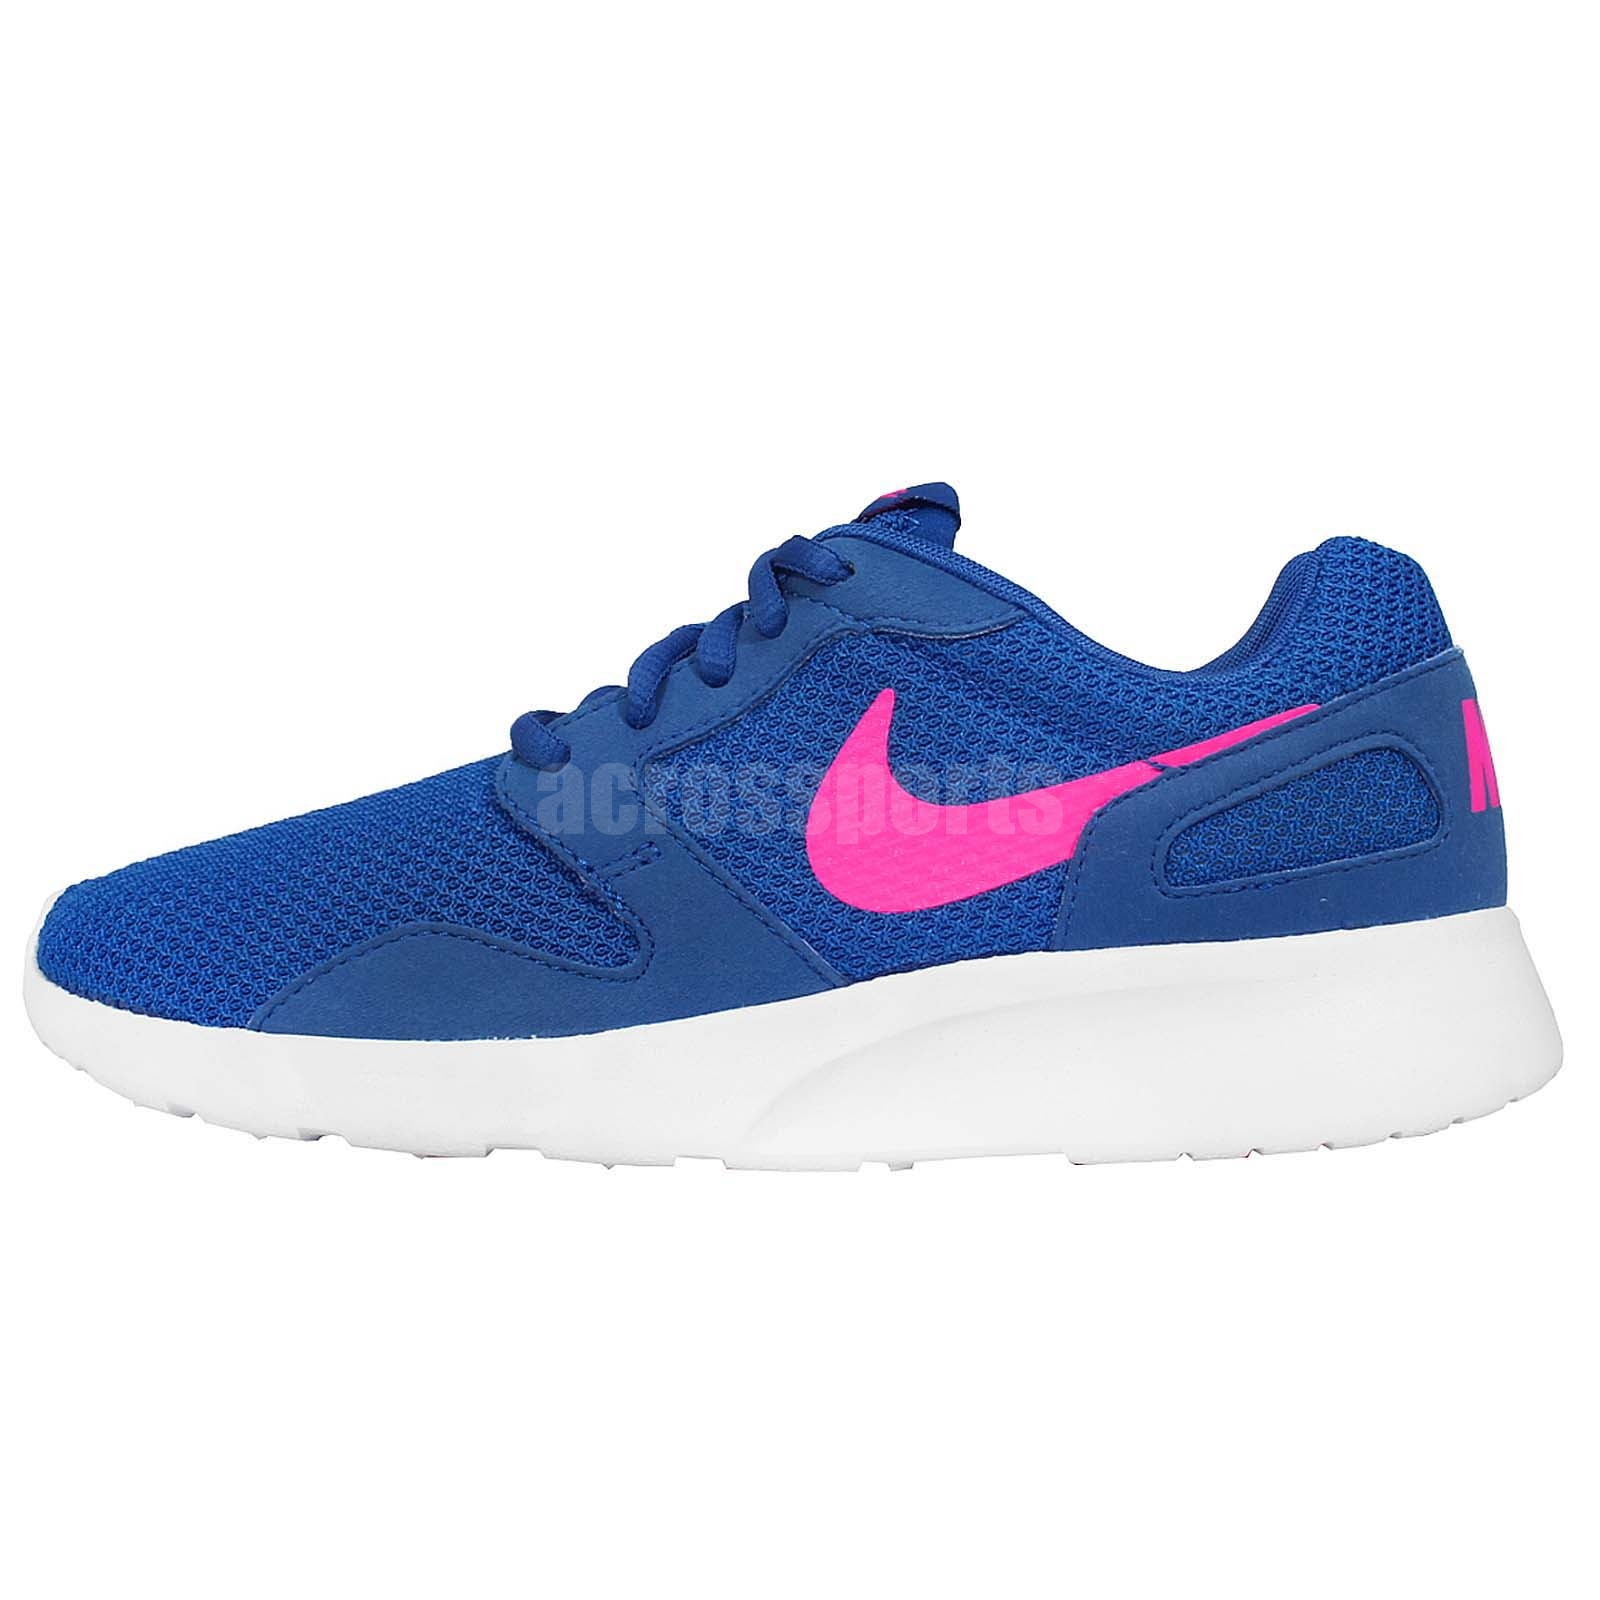 result for: Home > nike > shoes > Pink > Blue Sort By: Initial Results Product Rating (High to Low) Alphabetical (A to Z) New Arrivals Price (Low to High) Price (High to Low) Top Sellers Brand Name A-Z.